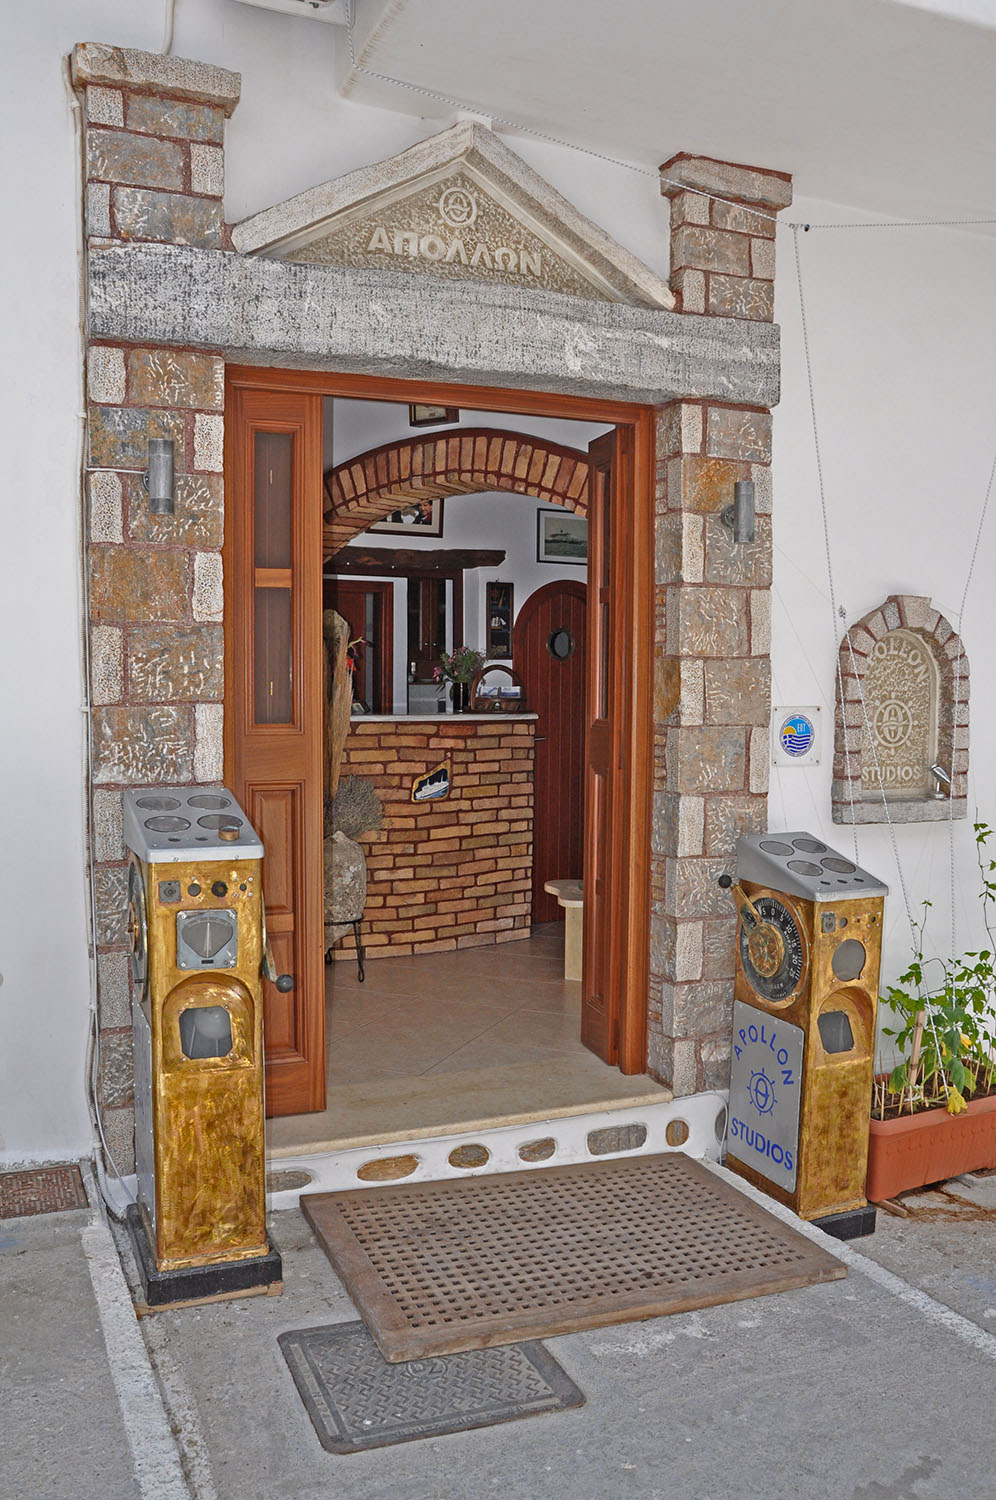 Apollon Studios entrance